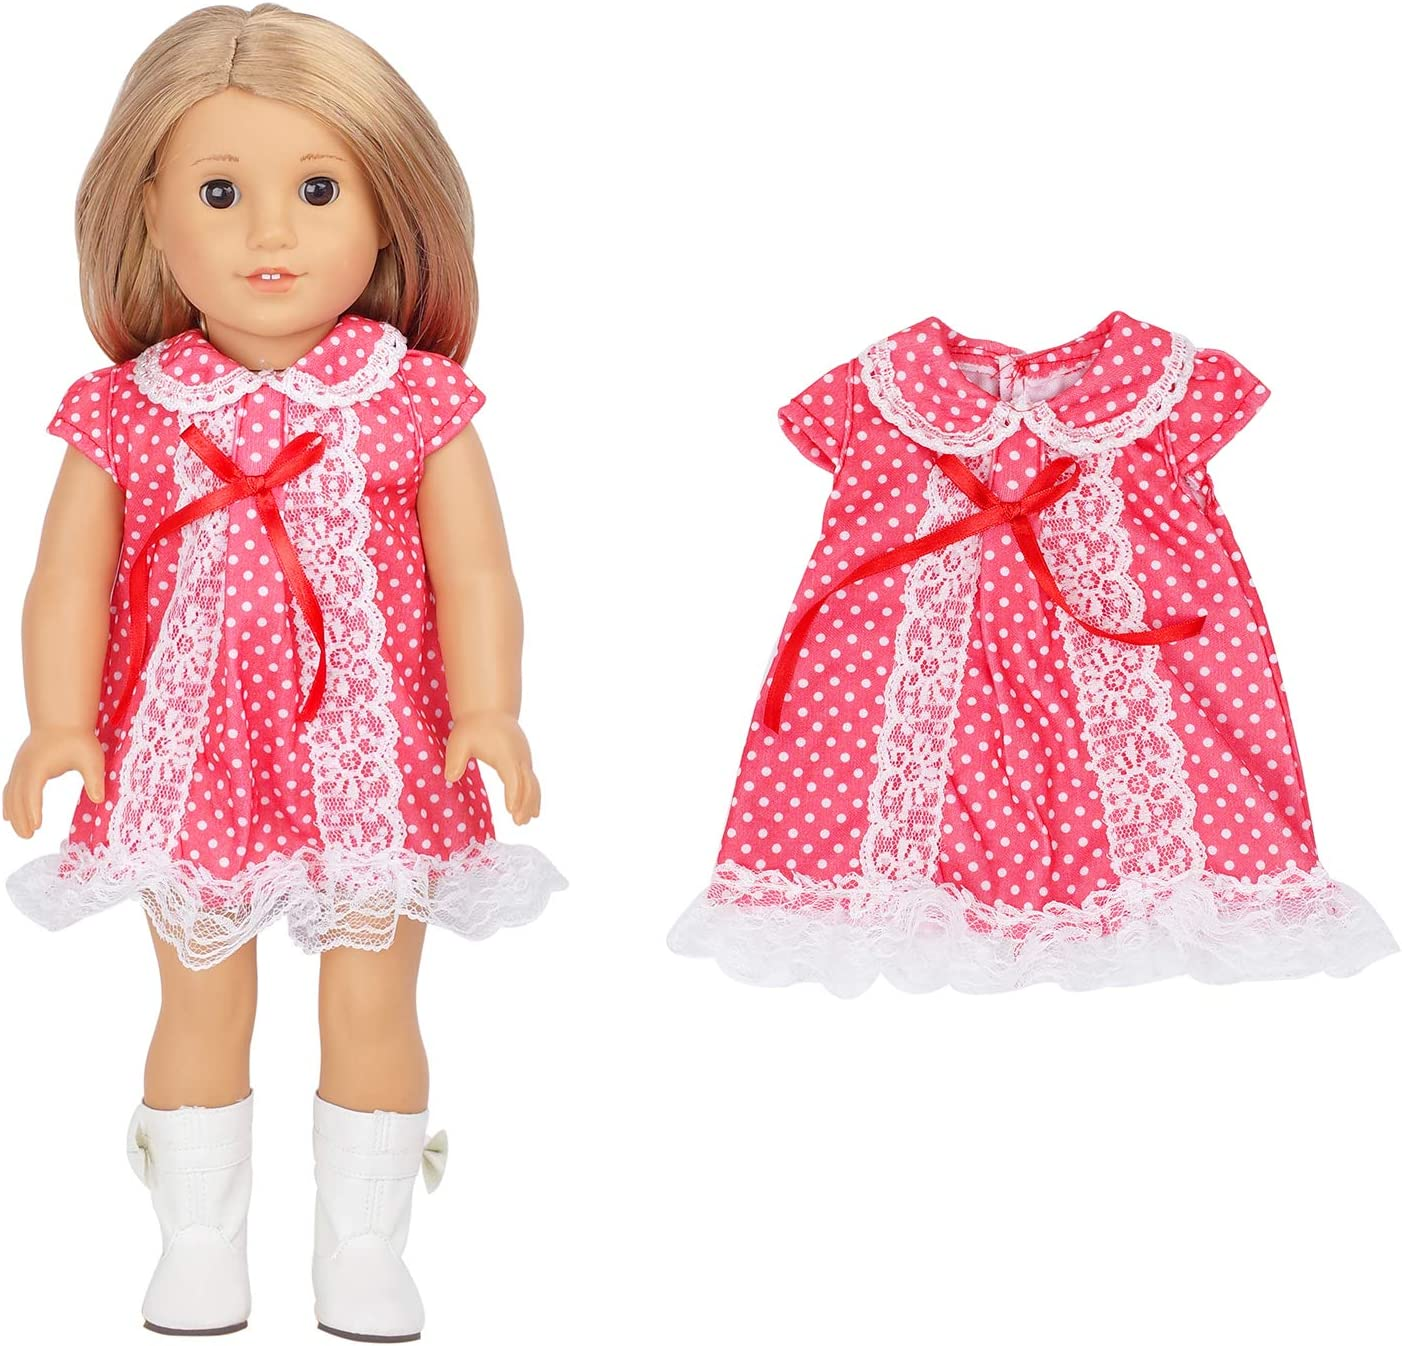 18 inch Doll Clothes Outfits ELOPELY 10pcs American Doll Clothes for 18 inch Doll Dresses Clothes and Accessories